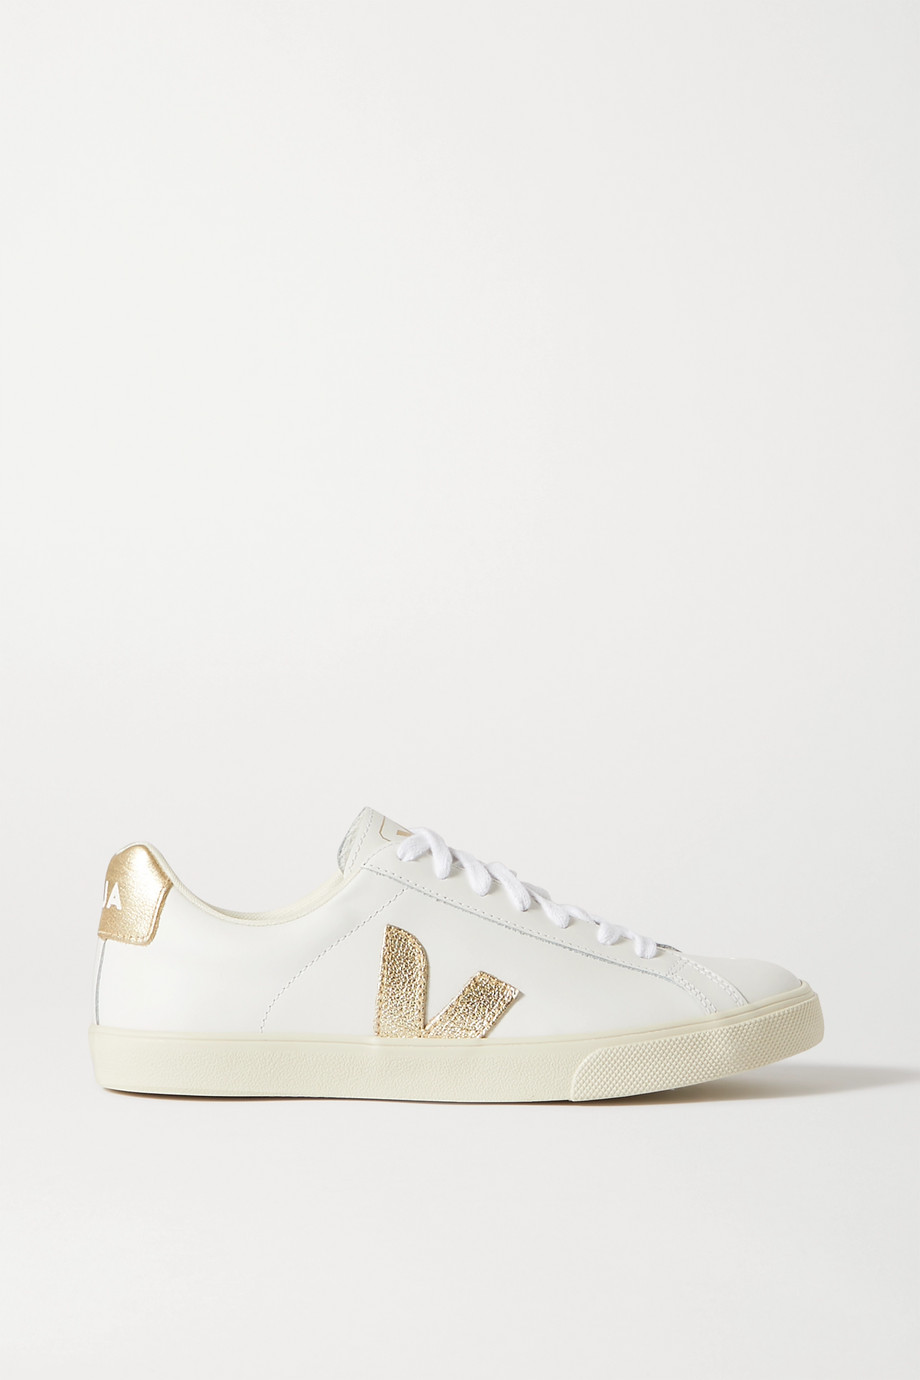 Veja + NET SUSTAIN Esplar metallic-trimmed leather sneakers